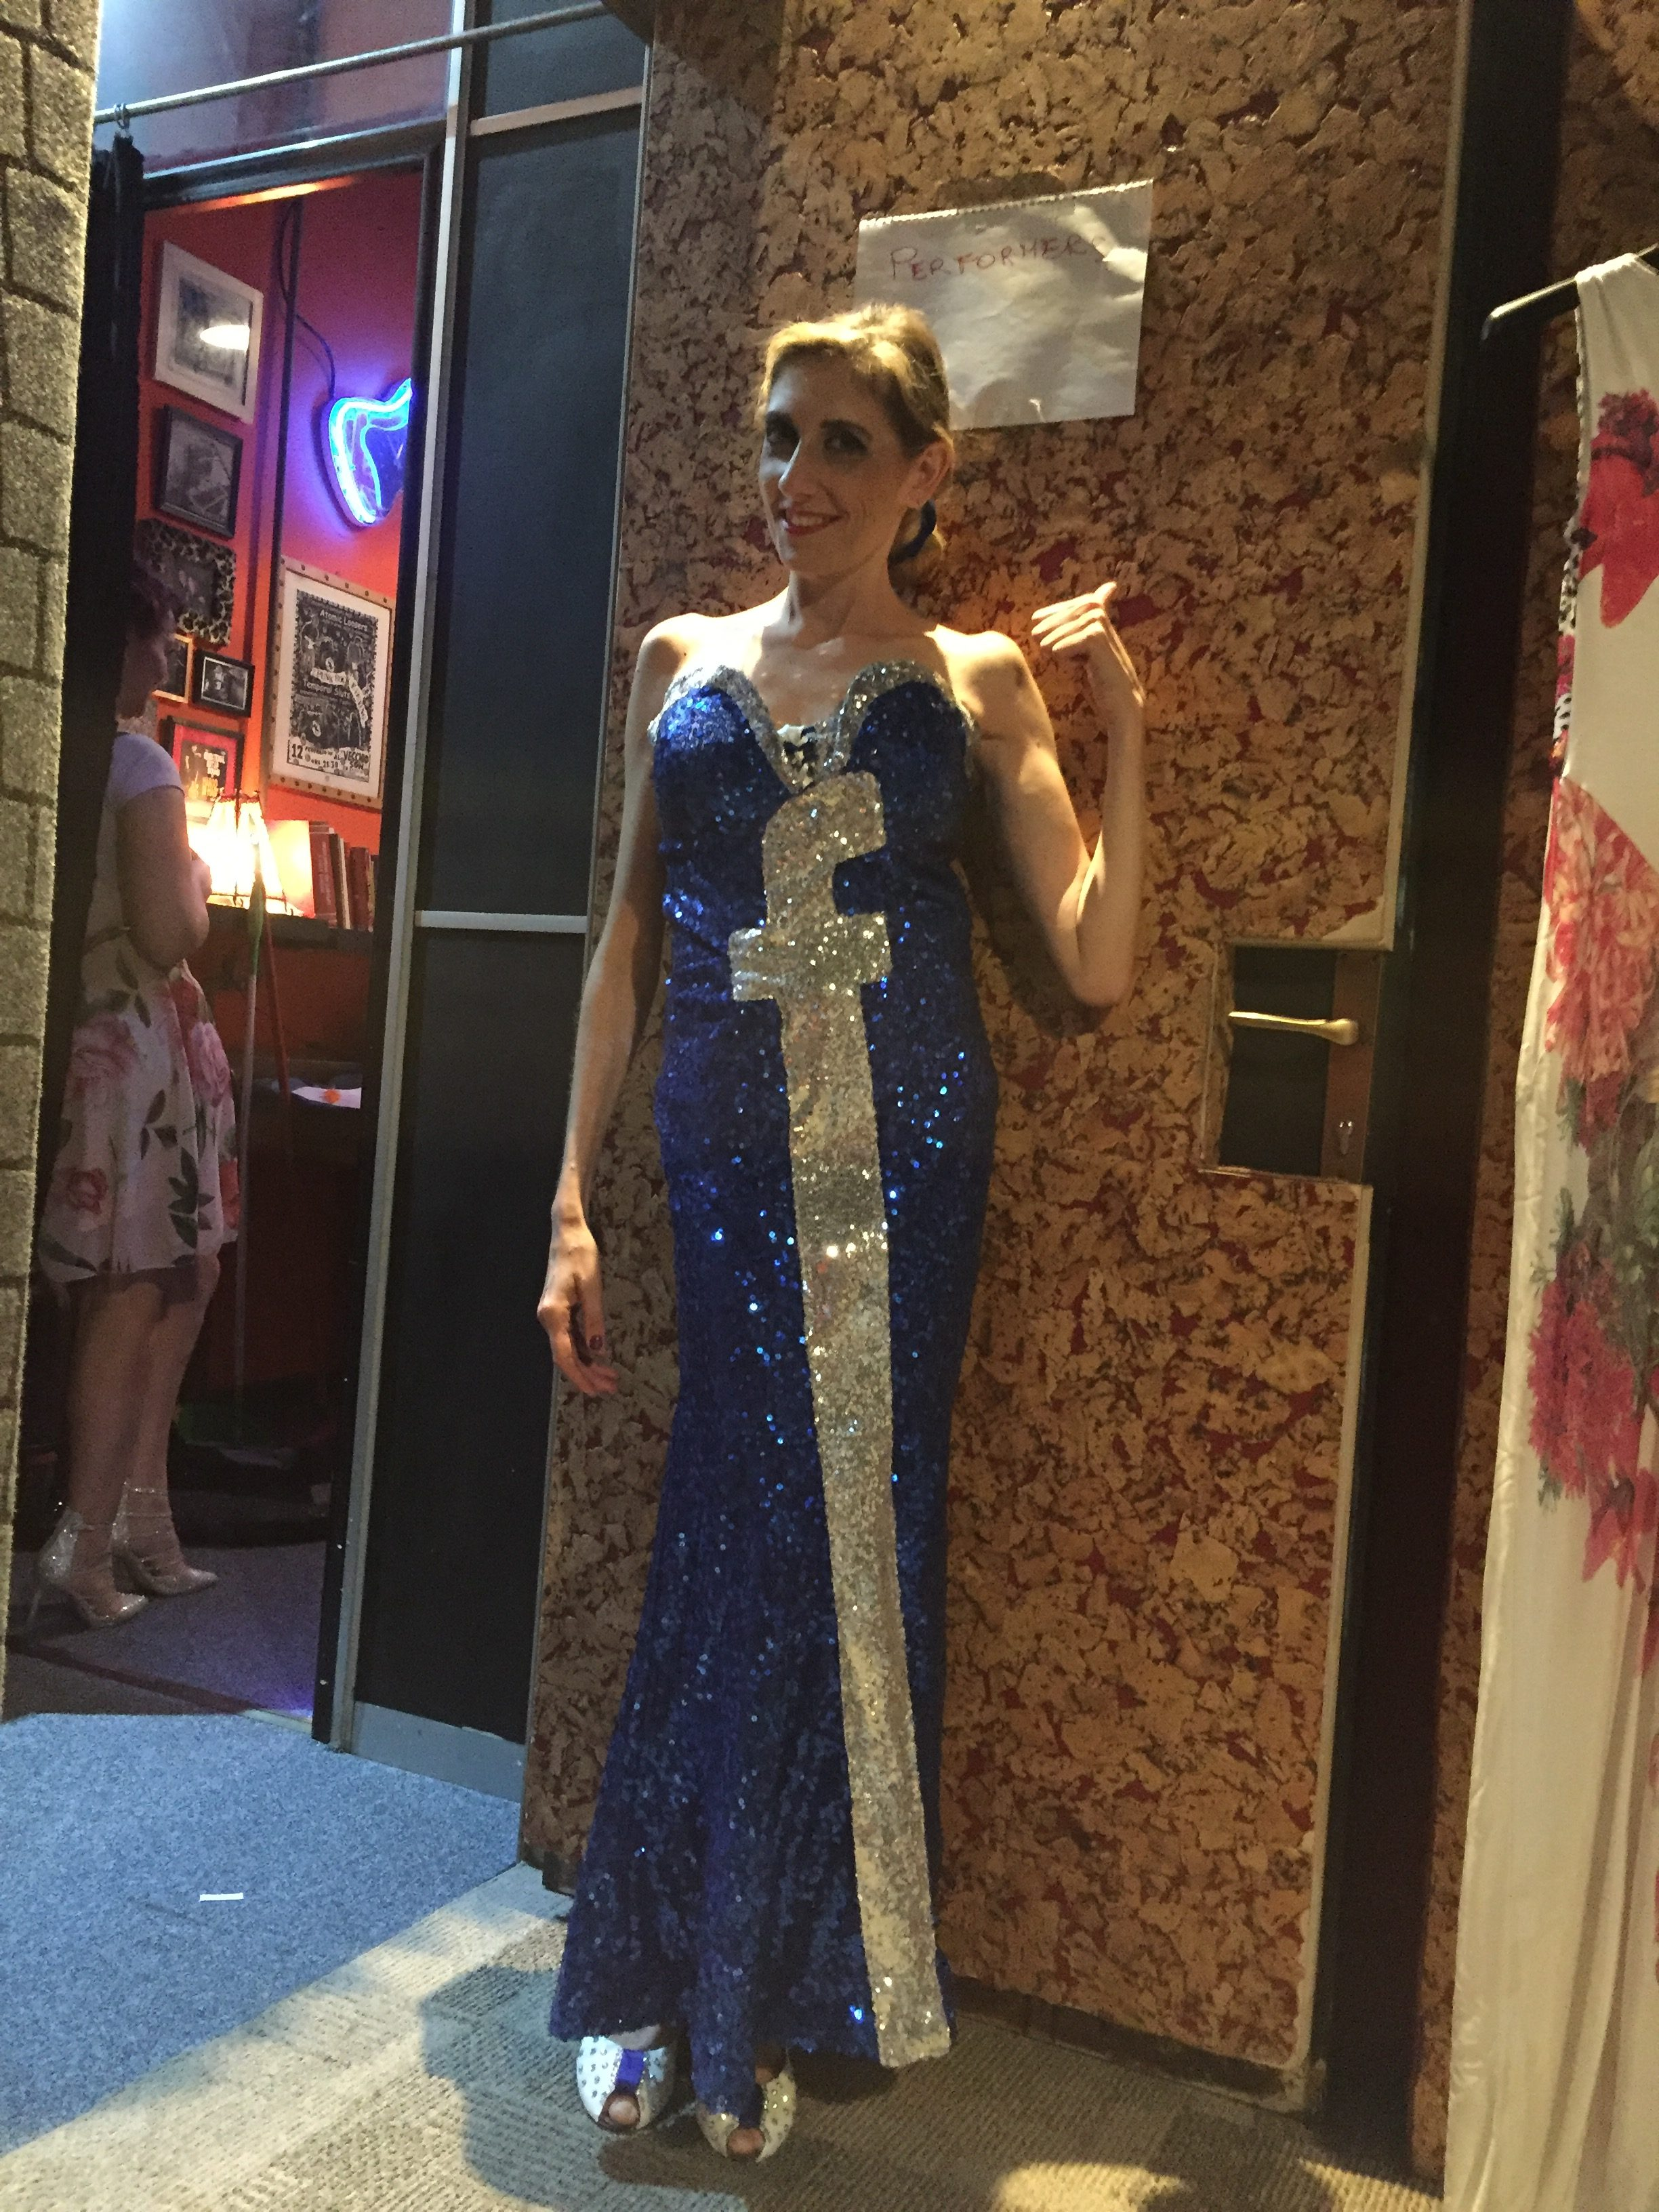 2018_09_13 - 5th Como Lake Burlesque Festival - Princess Night - Ready to rock the stage @ Joshua Blues Club